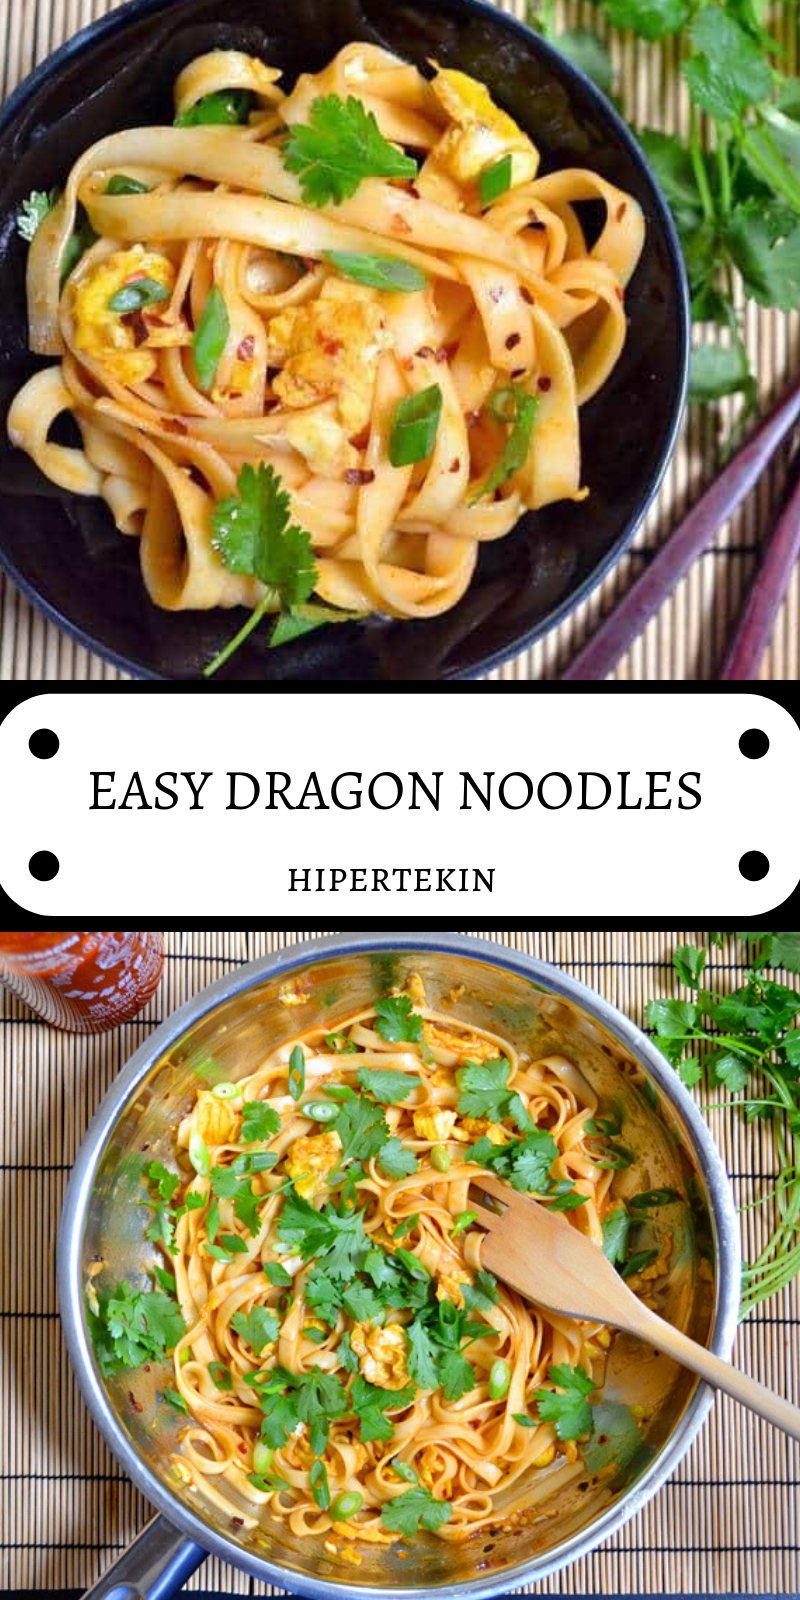 EASY DRAGON NOODLES